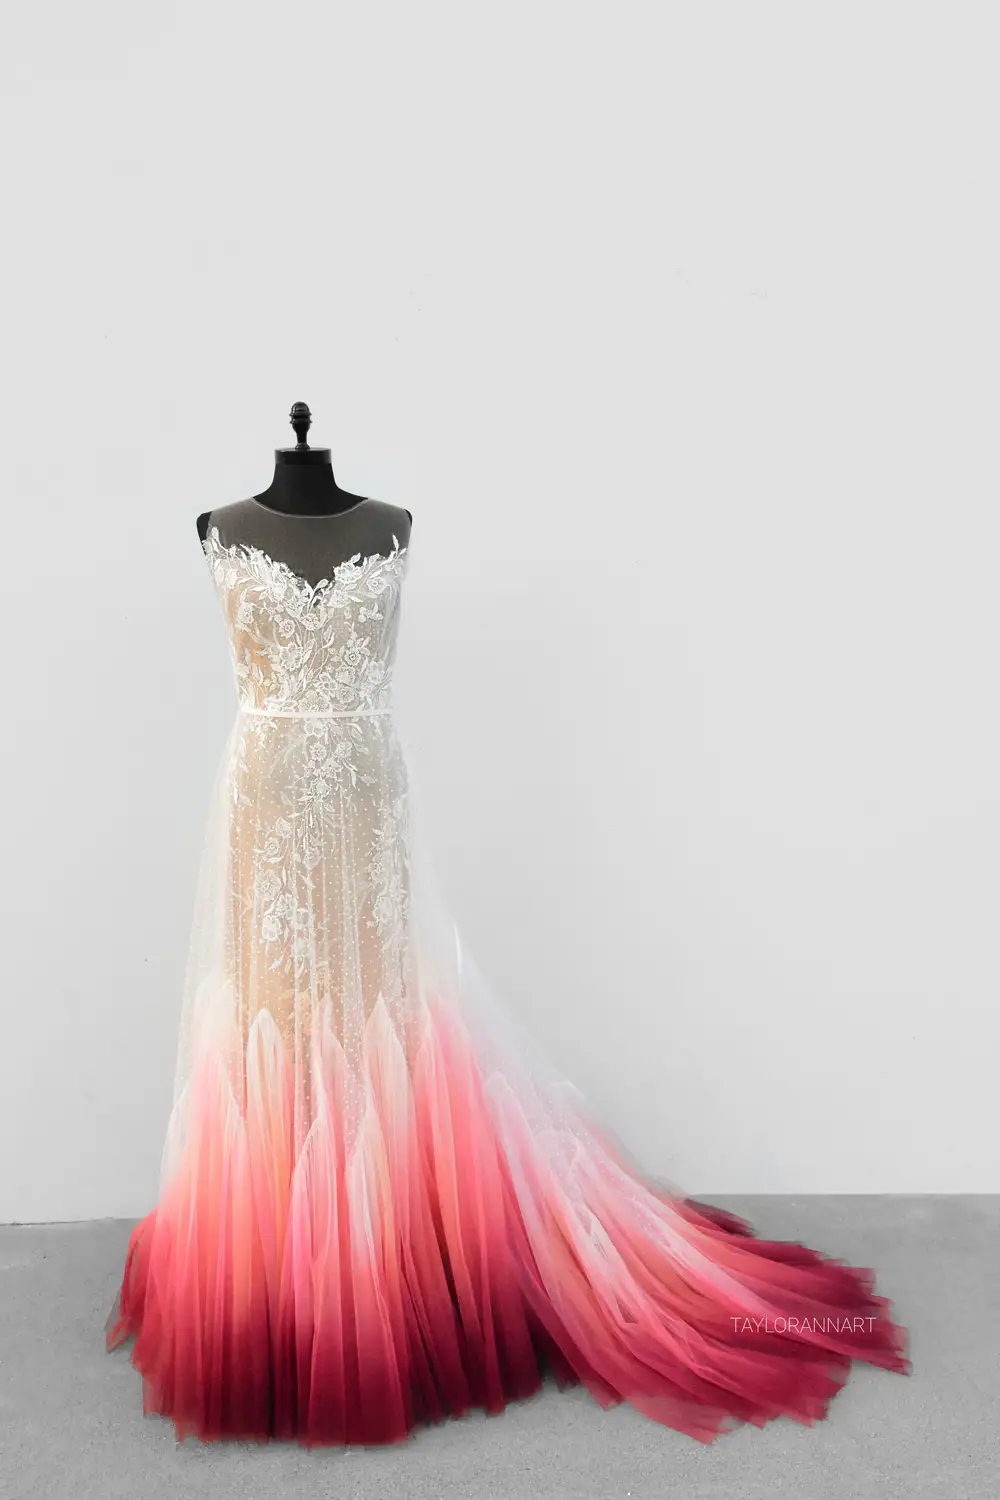 An artist airbrushes wedding dresses, and you can buy one of her colorful creations for your special day